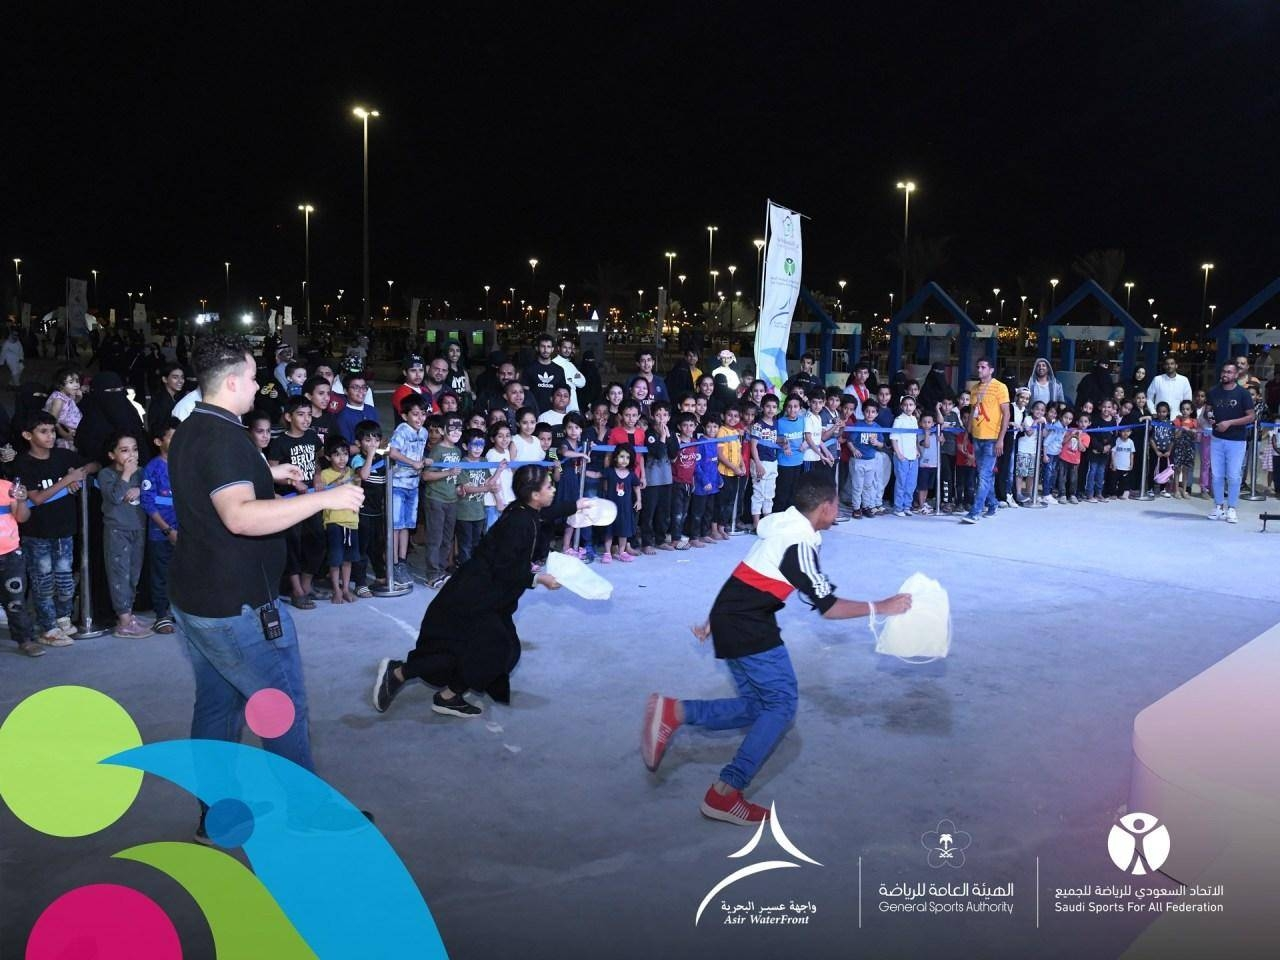 The Asir Waterfront community sports initiative, introduced by the SFA as part of the Vision 2030 Quality of Life program, was designed to be an inclusive and diverse family-friendly event. — Courtesy photo